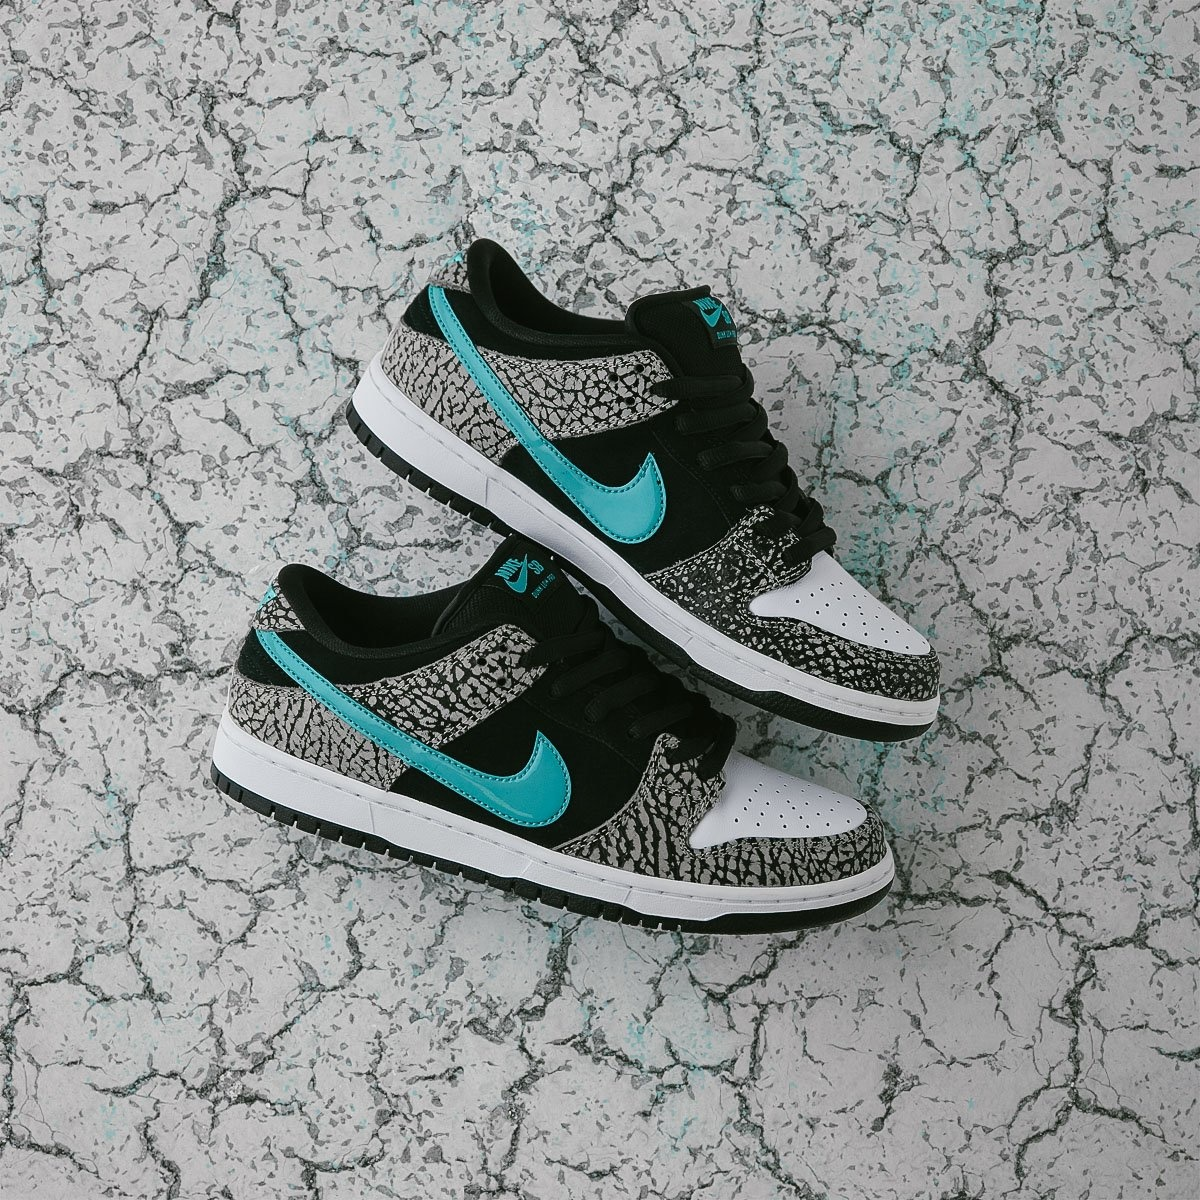 IF YOU GOT A CALL LAST NIGHT AT 10:30 FROM US ABOUT THE ATMOS DUNKS, WE'RE SORRY... KINDA